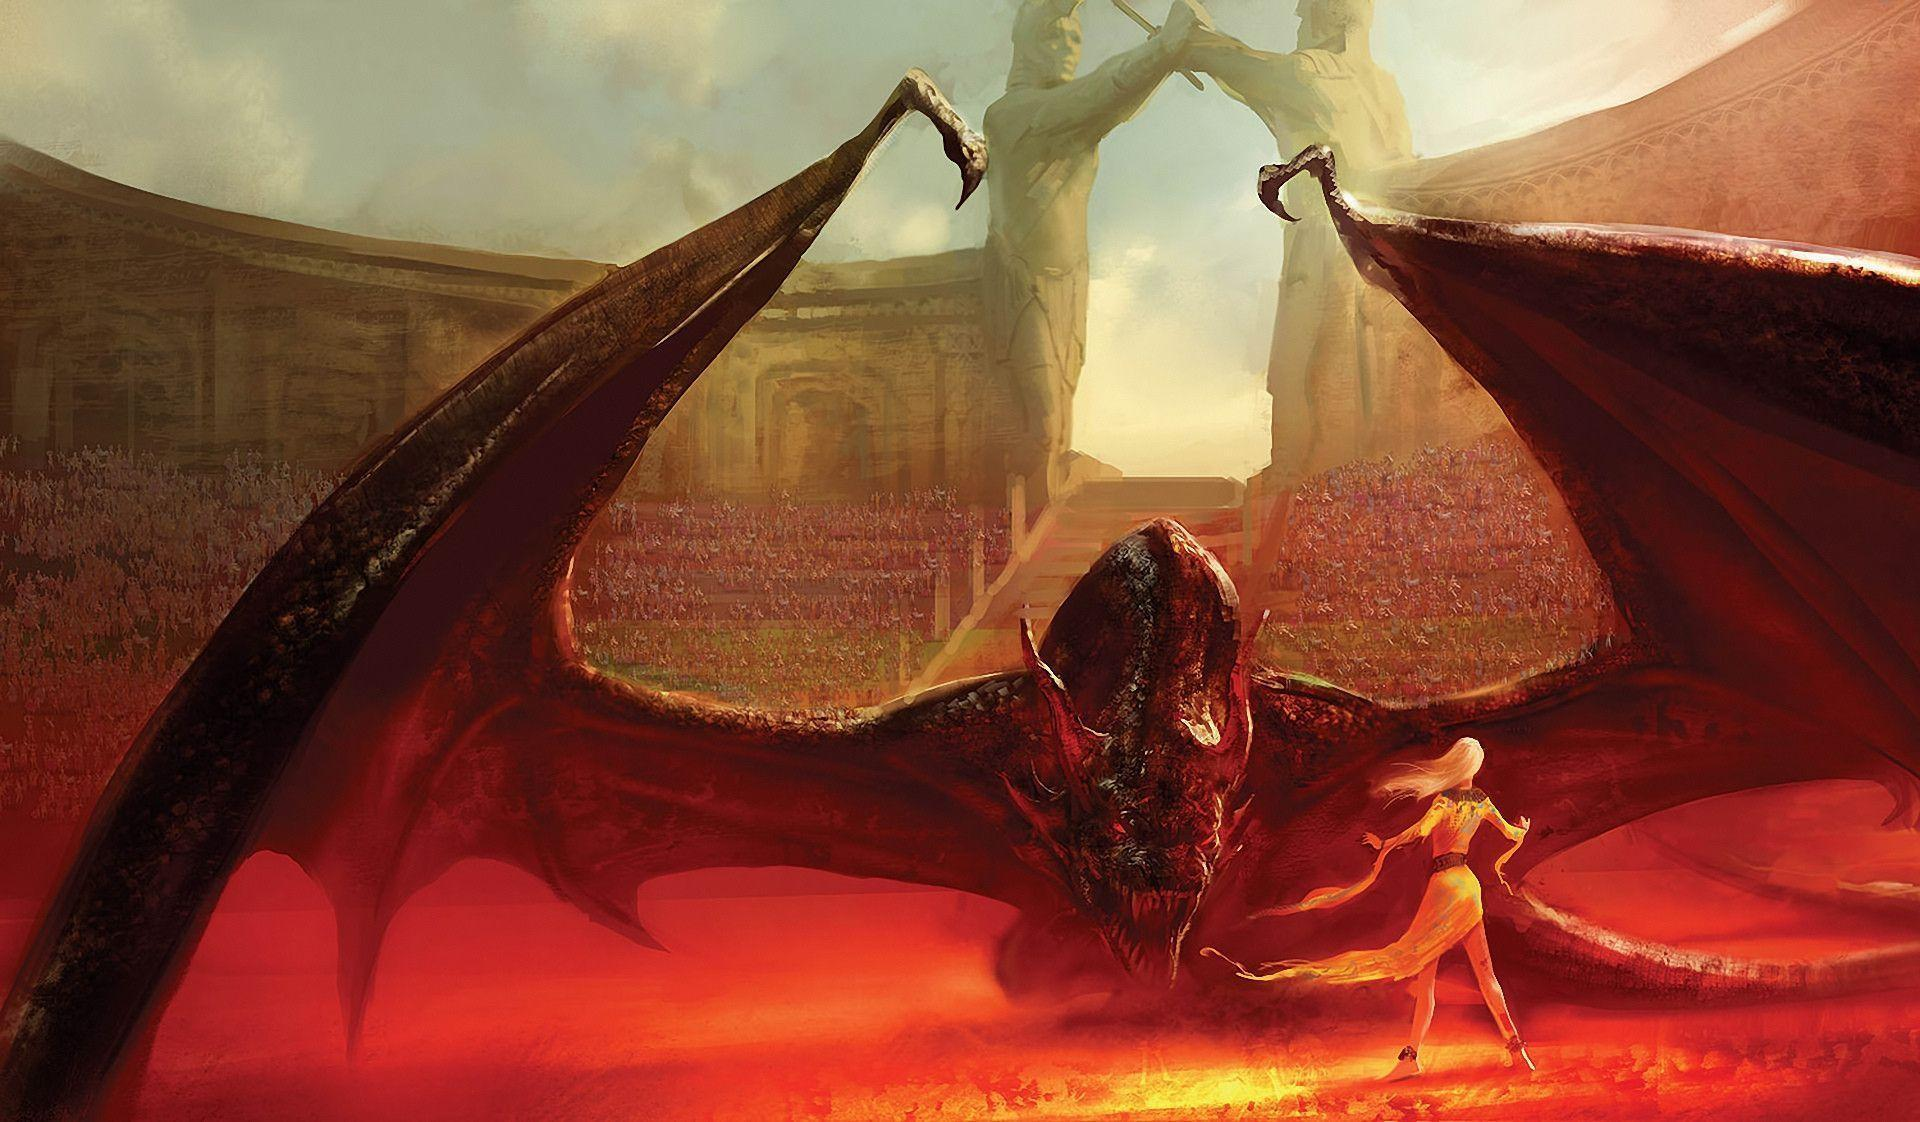 Marc simonetti Song of Ice and Fire Daenerys Targaryen Drogon